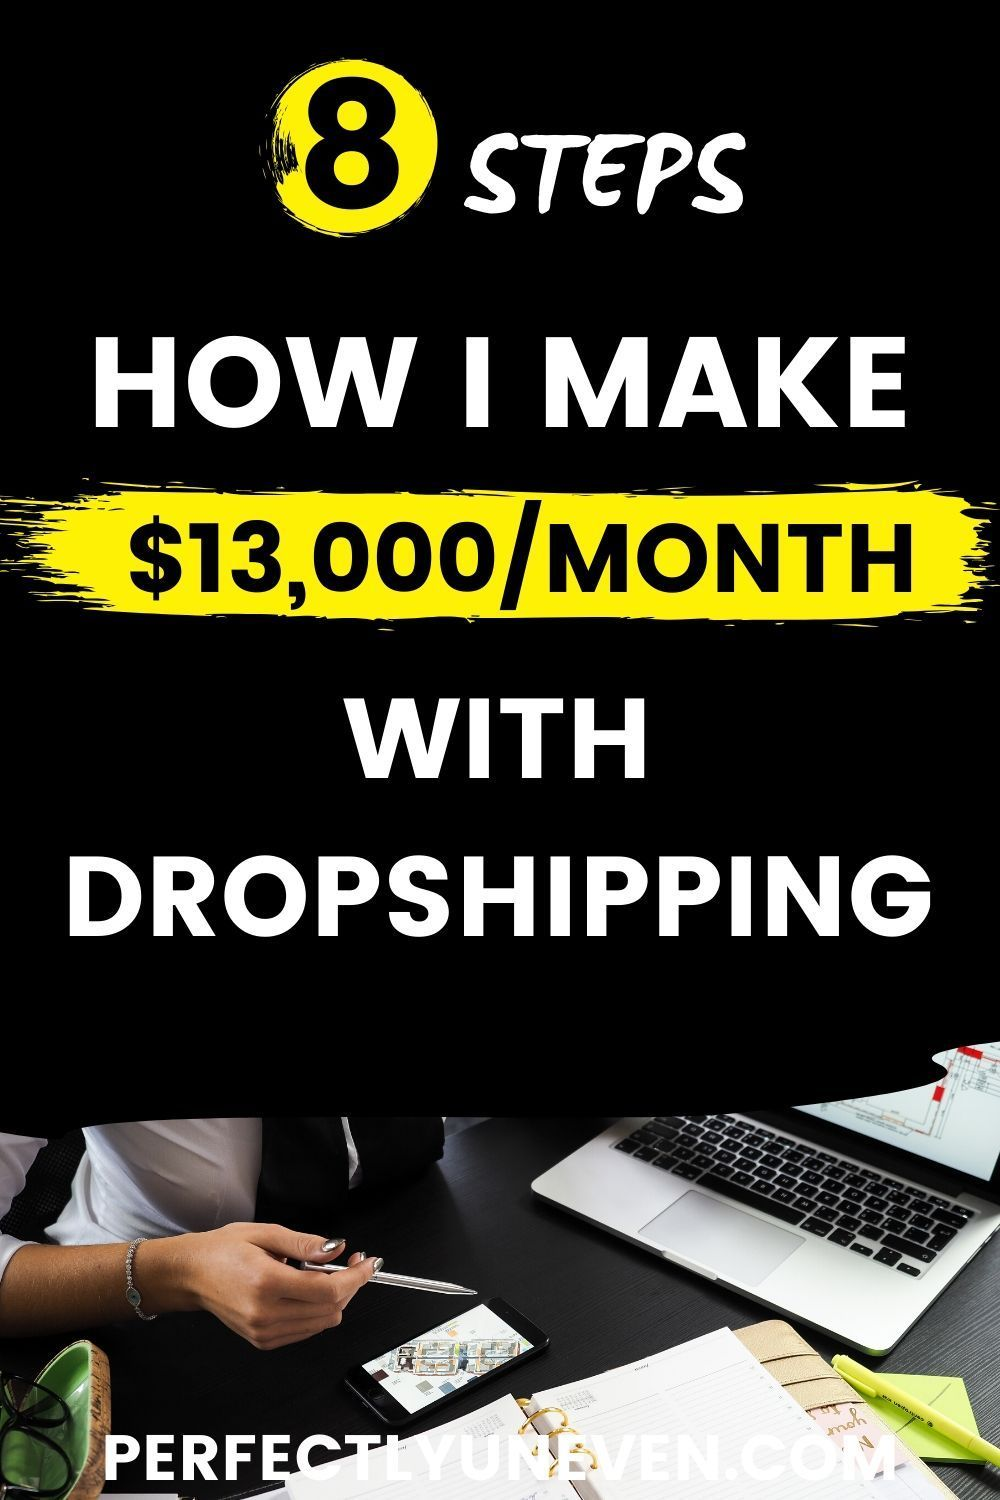 ULTIMATE GUIDE HOW TO START DROPSHIPPING BUSINESS 12K